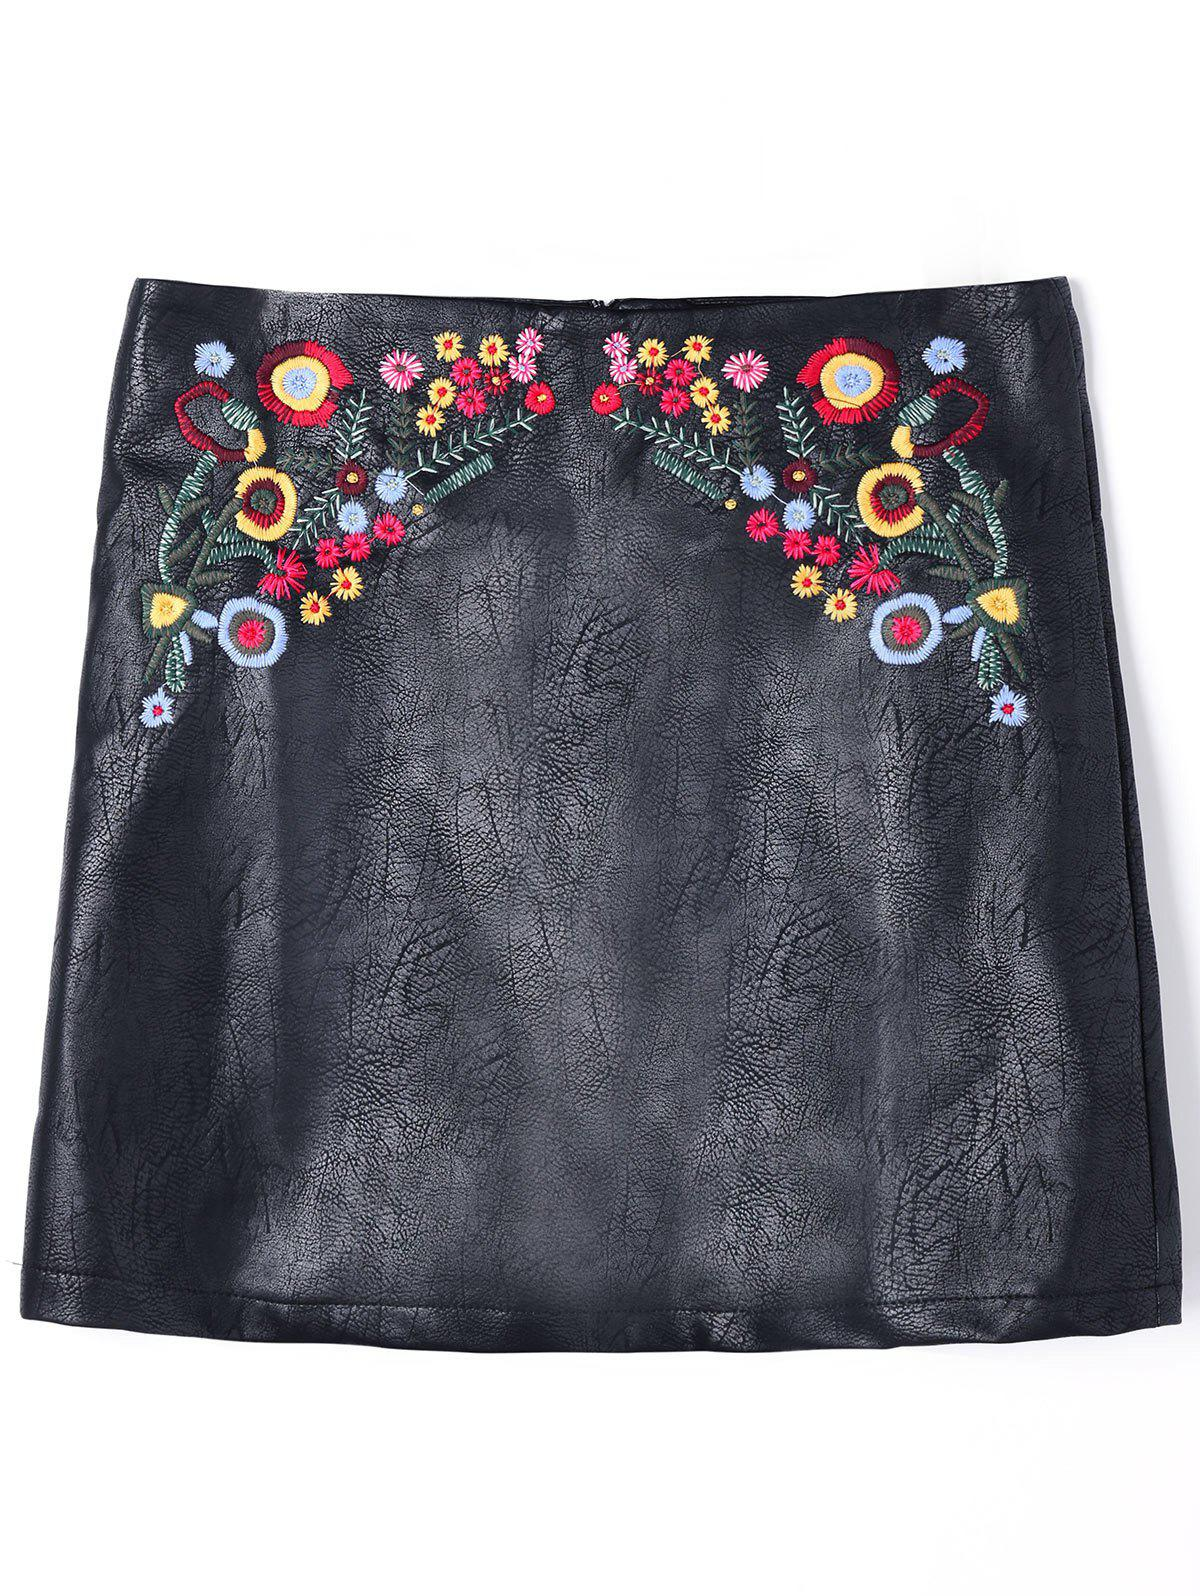 Cheap PU Leather Floral Embroidered Mini Skirt